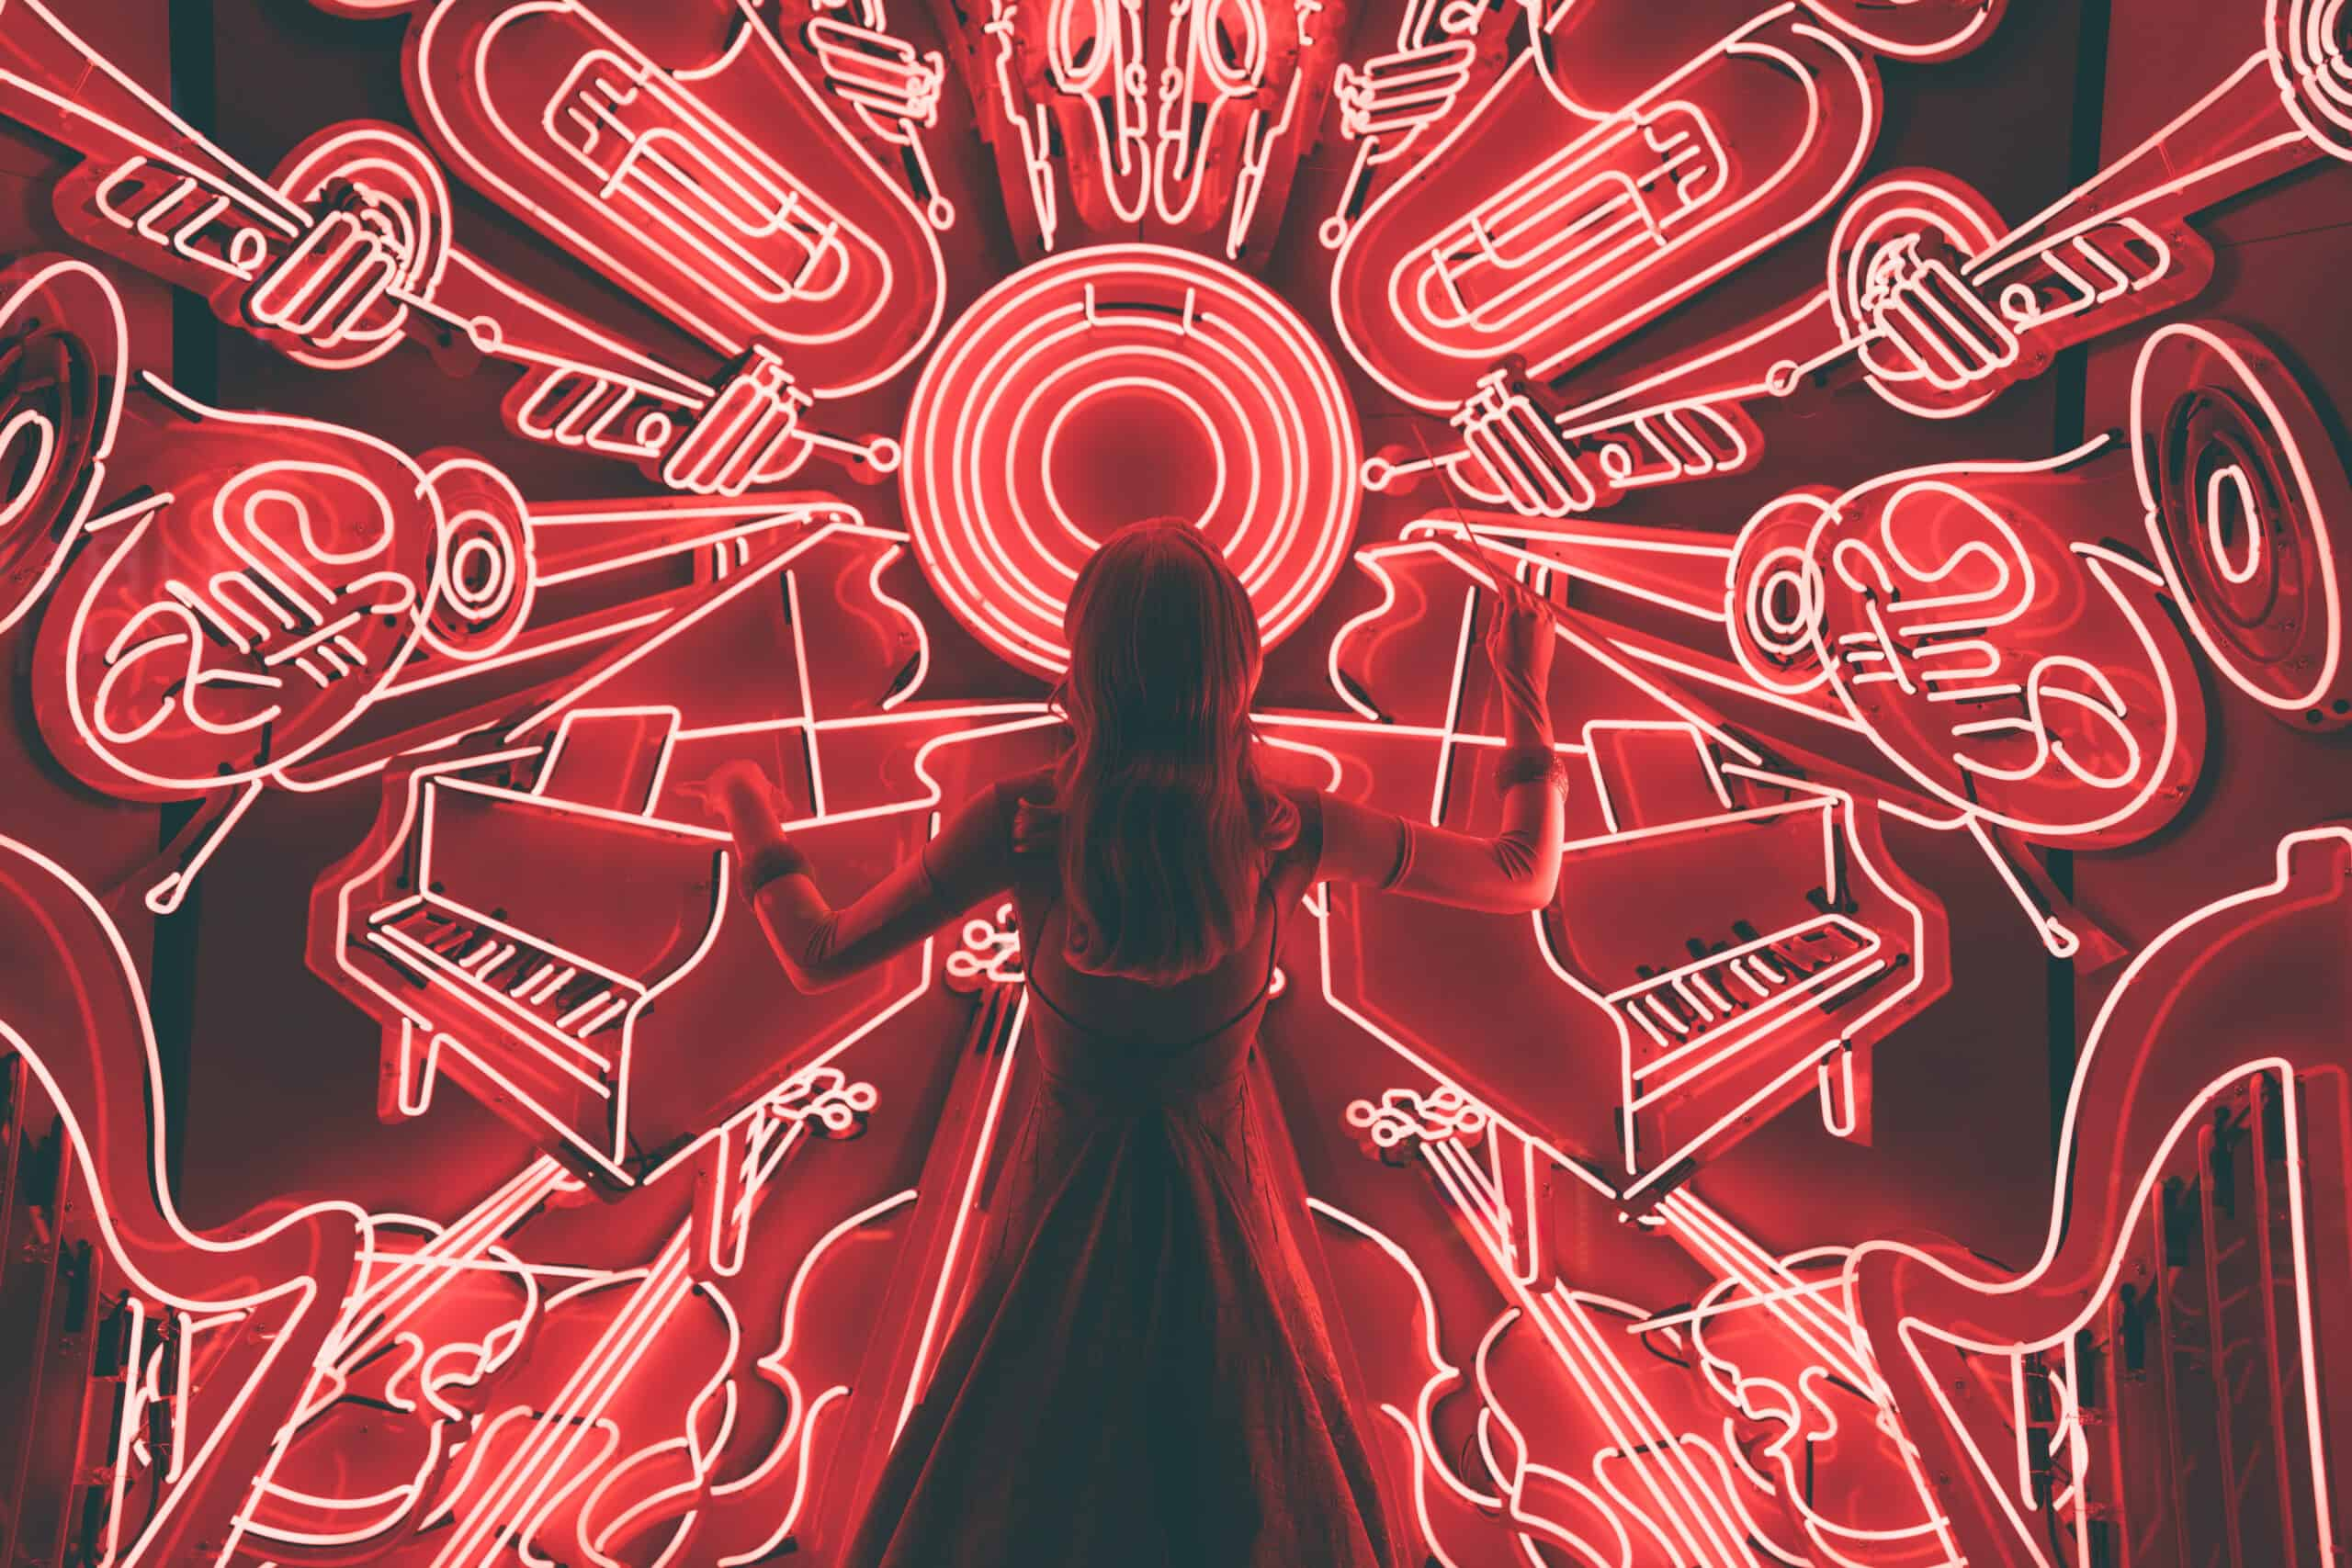 Woman standing in front of neon images of musical instruments pretending to conduct them.